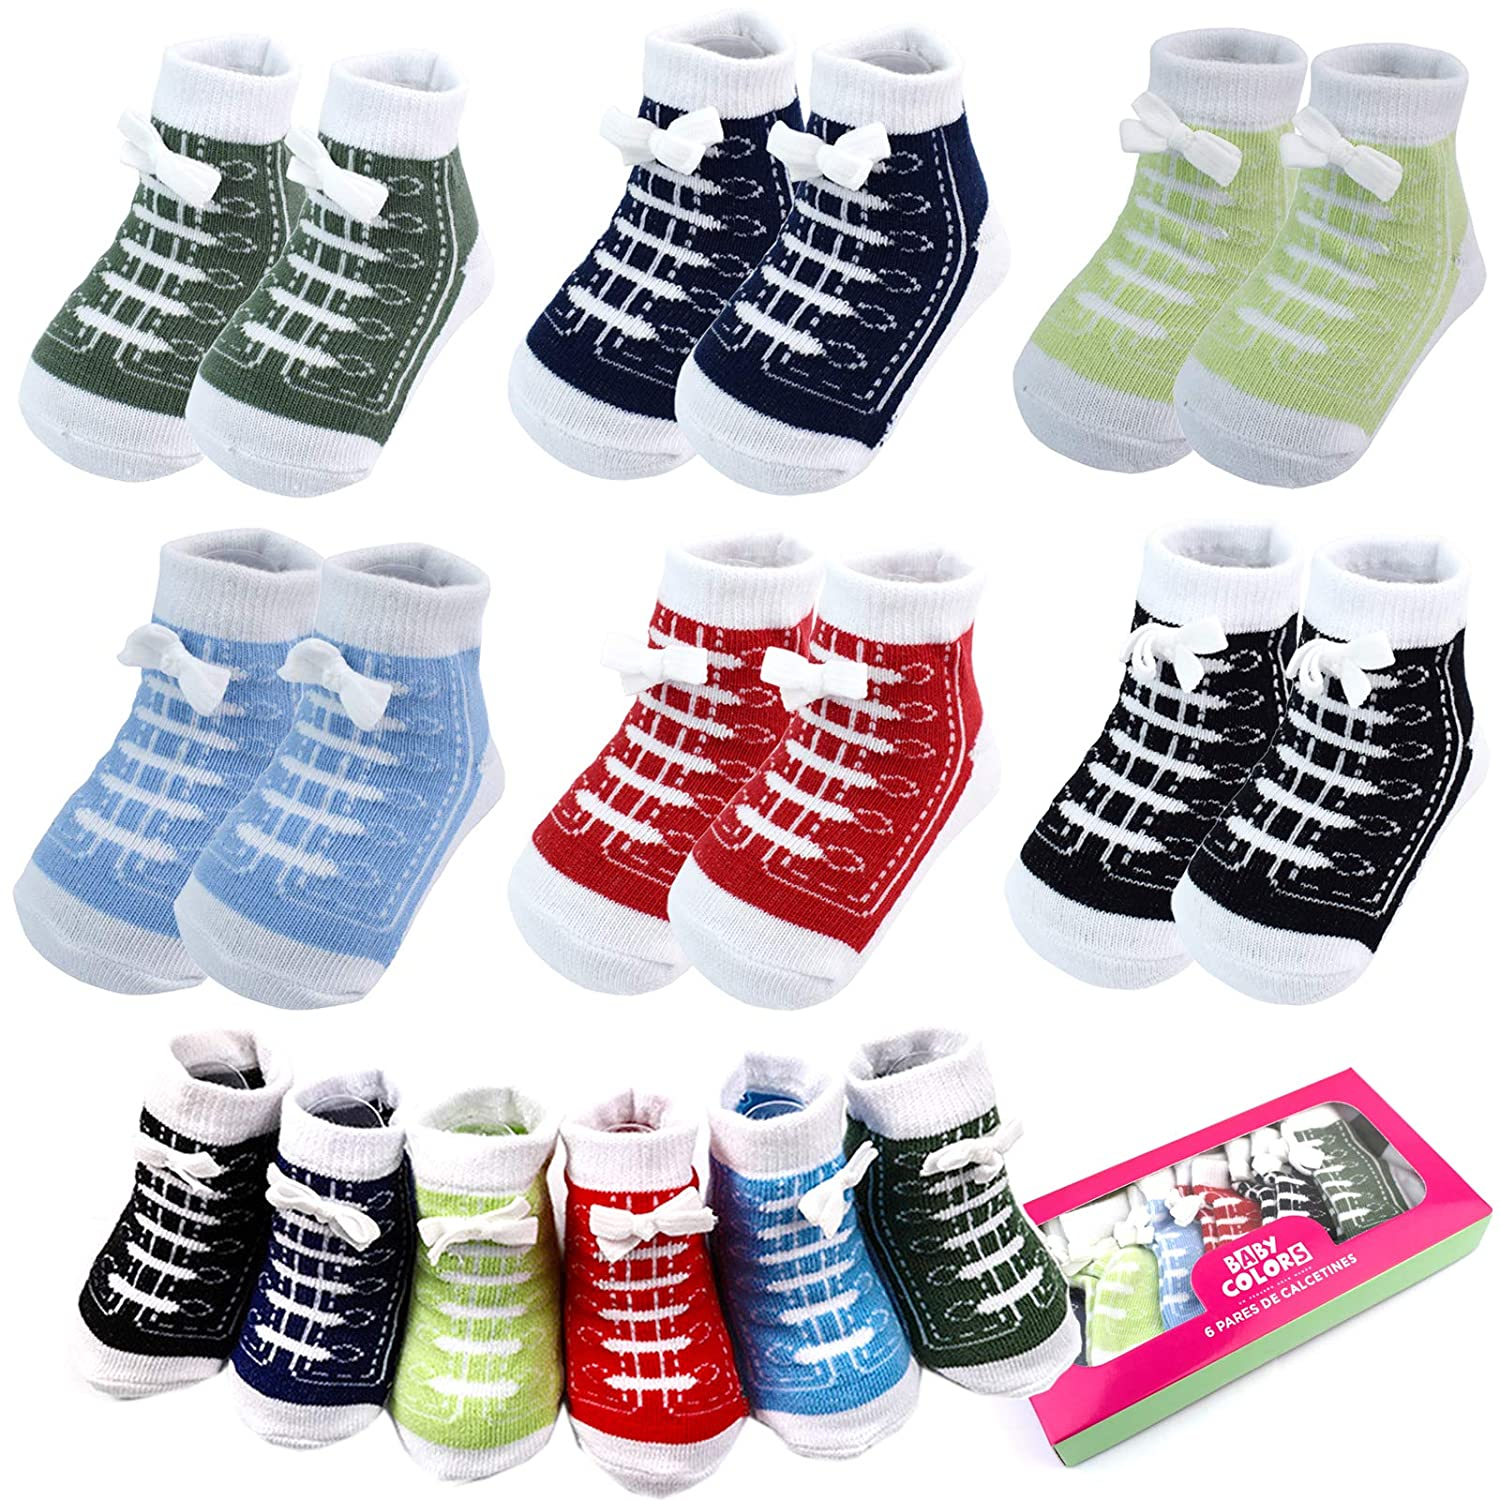 6 Pairs 0-6 month Baby Sneaker Newborn Ankle Sock Toddler Crew Walkers Bootie Infant Slippers Socks